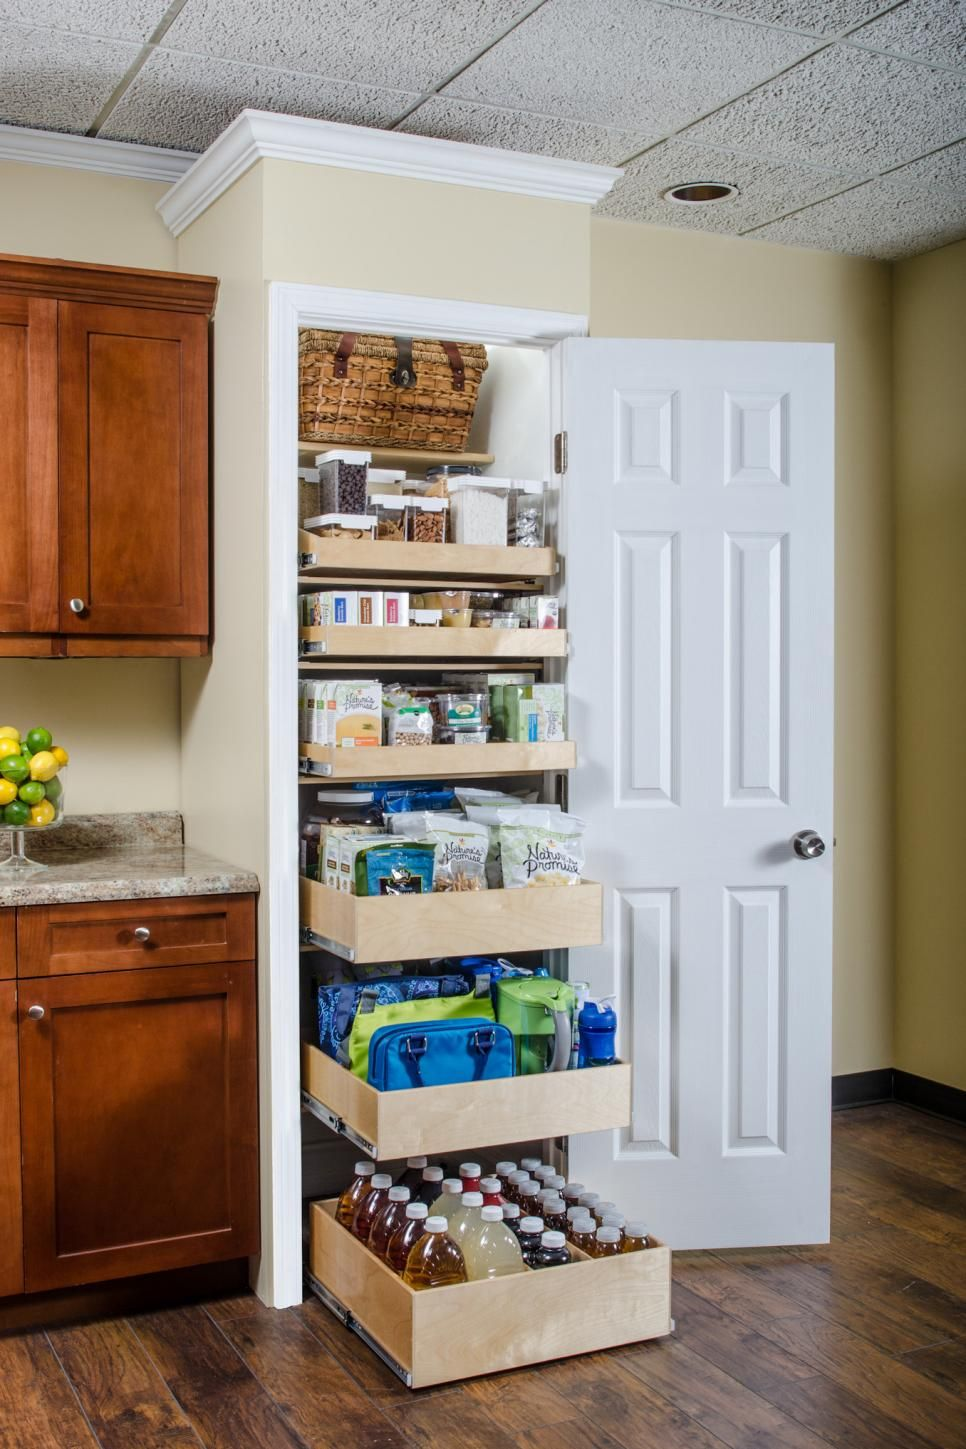 20 Best Pantry Organizers Diy kitchen storage, Pantry